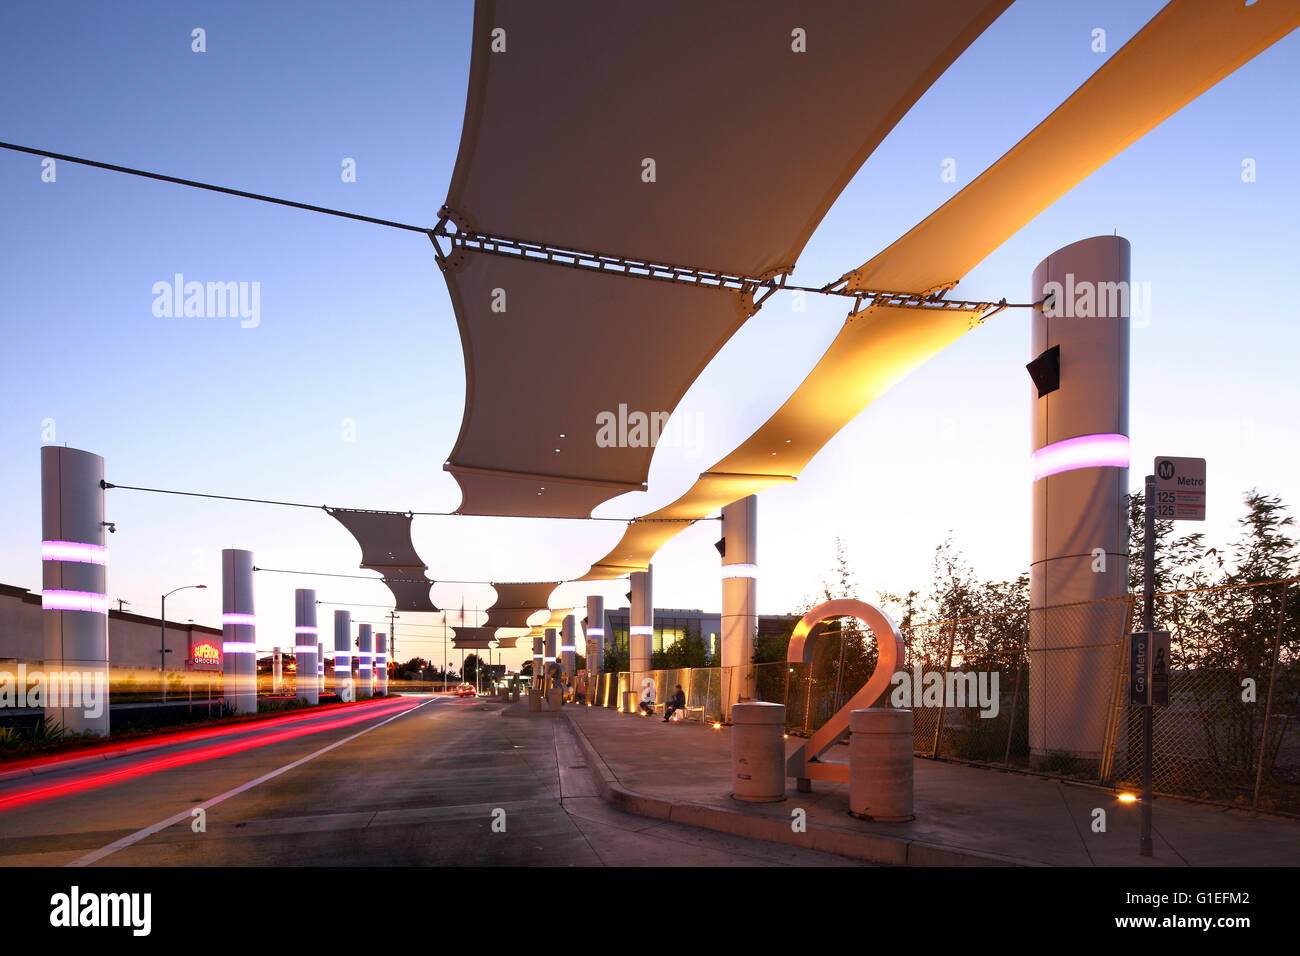 Martin Luther King Jr. Transit Center, Compton, CA by Base Architecture. Platform view. - Stock Image